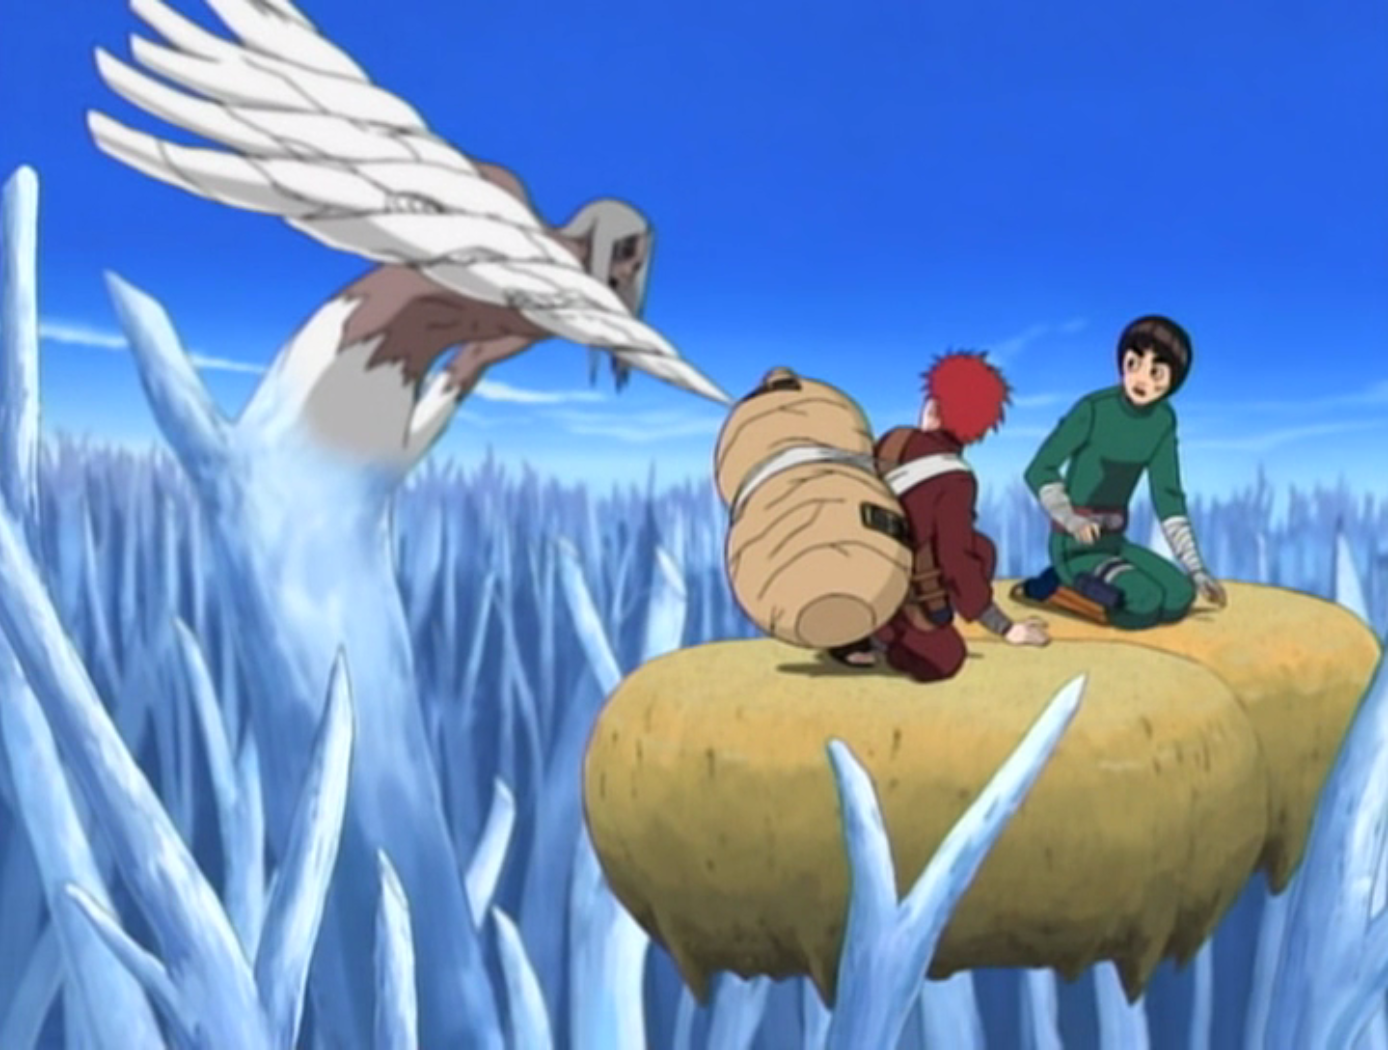 Kimimaro vs Gaara Rock Lee Gaara And Lee Vs Kimimaro Full Fight